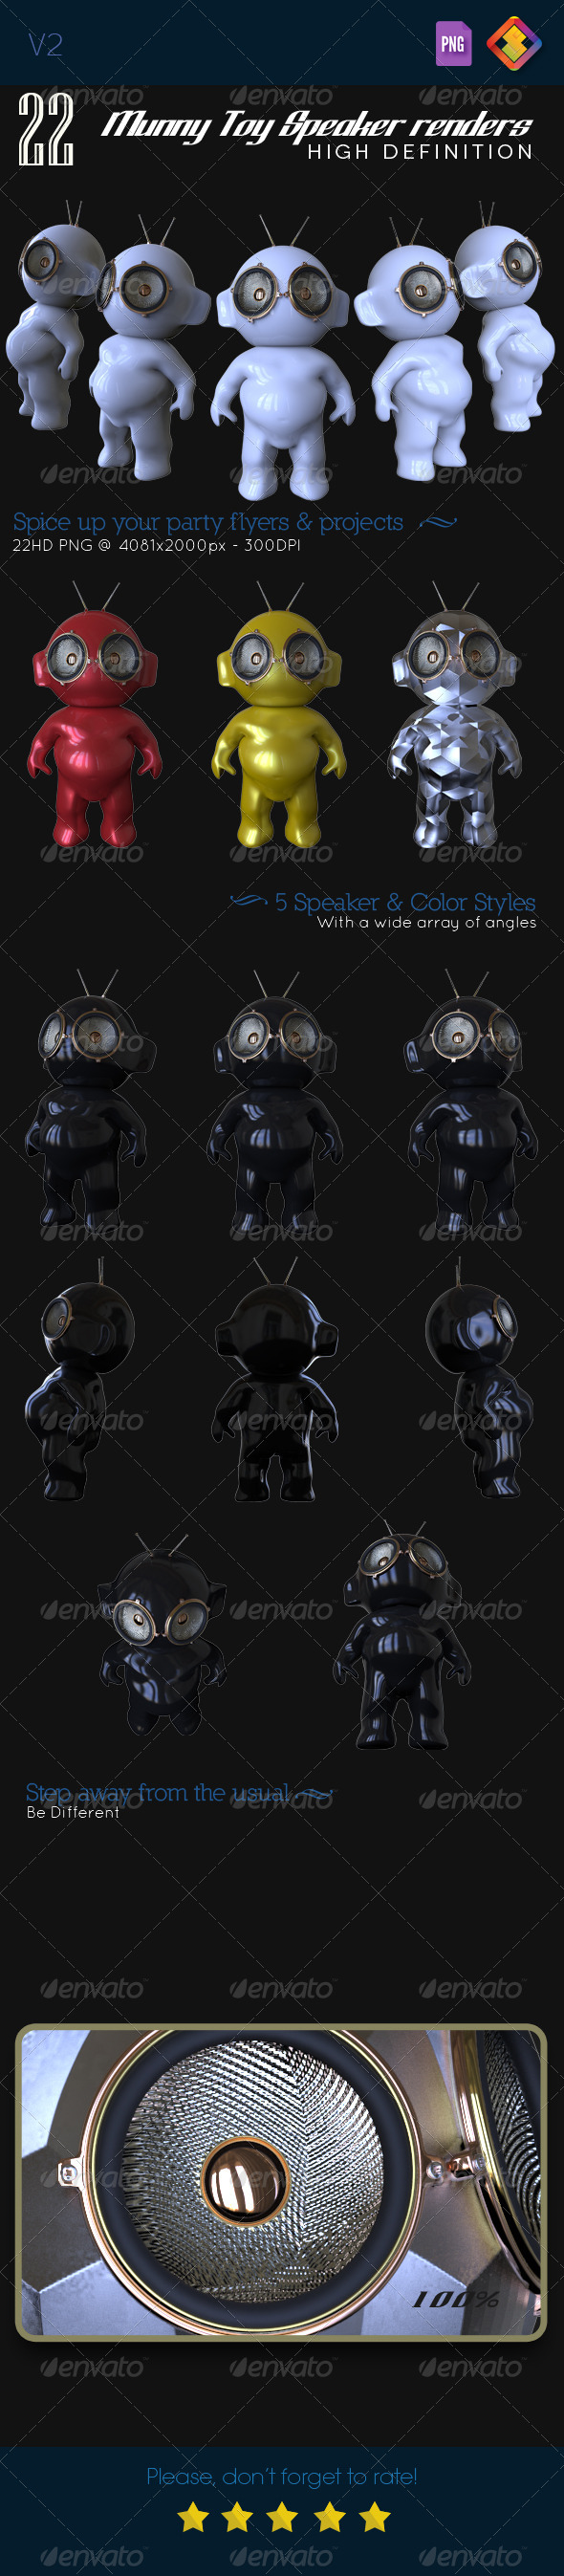 Munny Toy Speakers V.2 - Characters 3D Renders